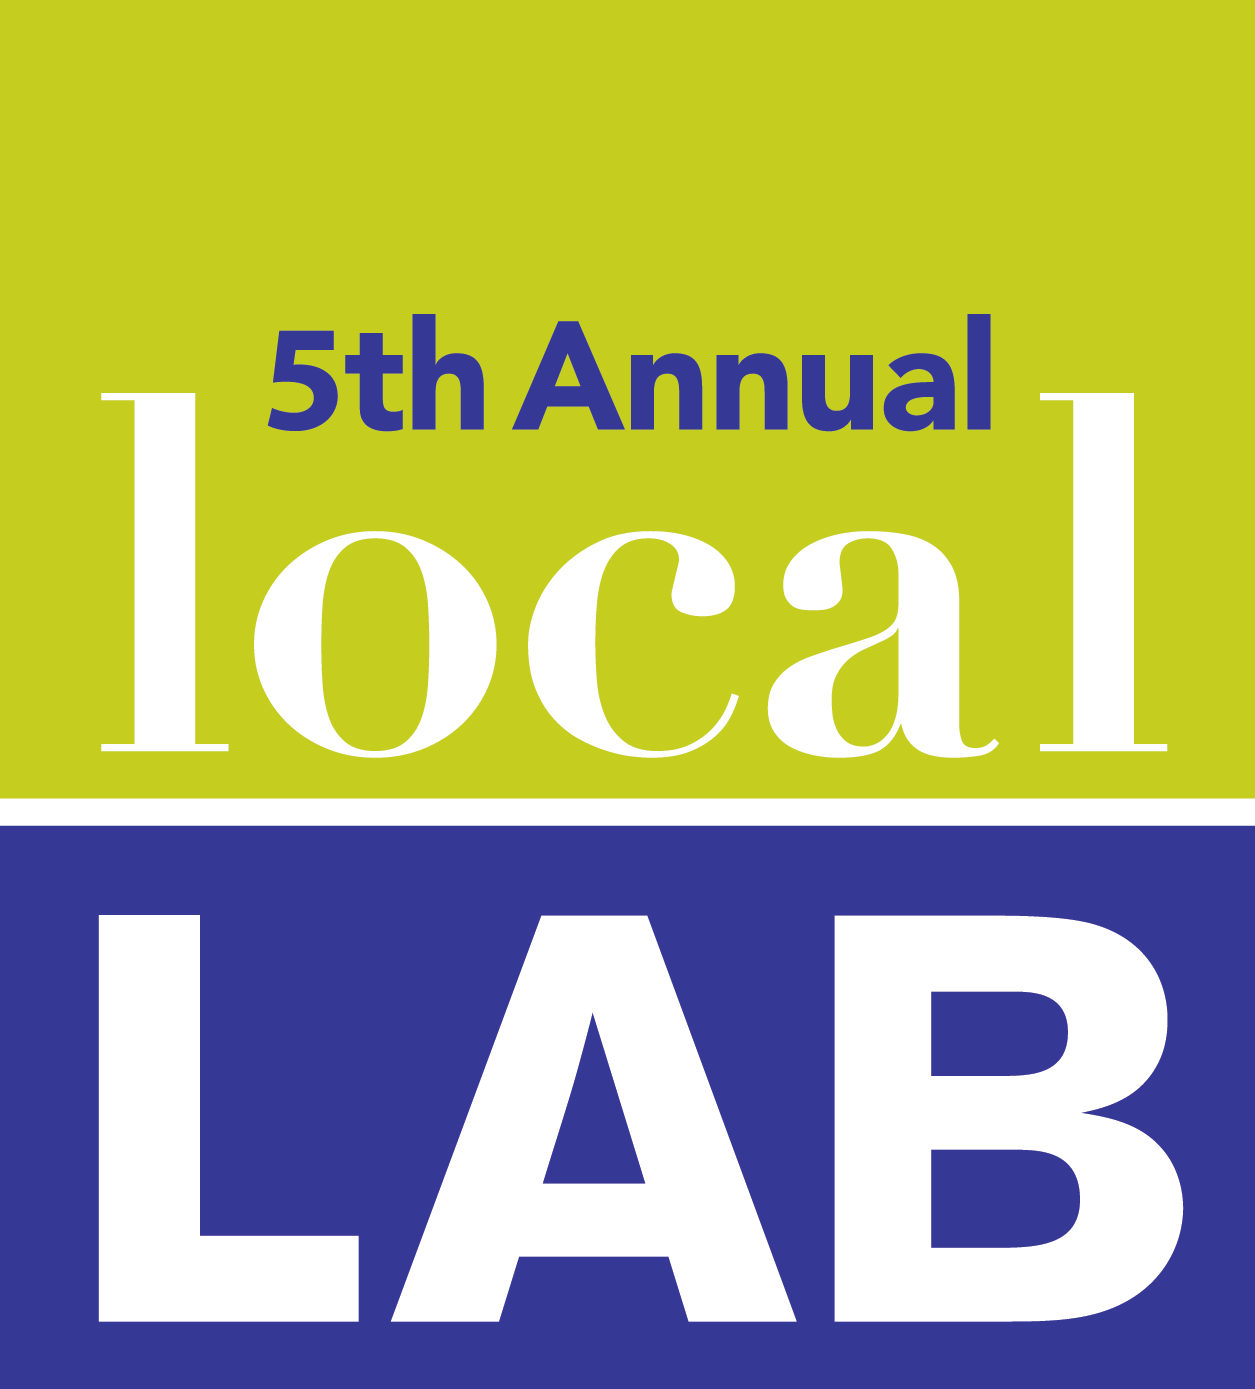 local_lab_5th.png